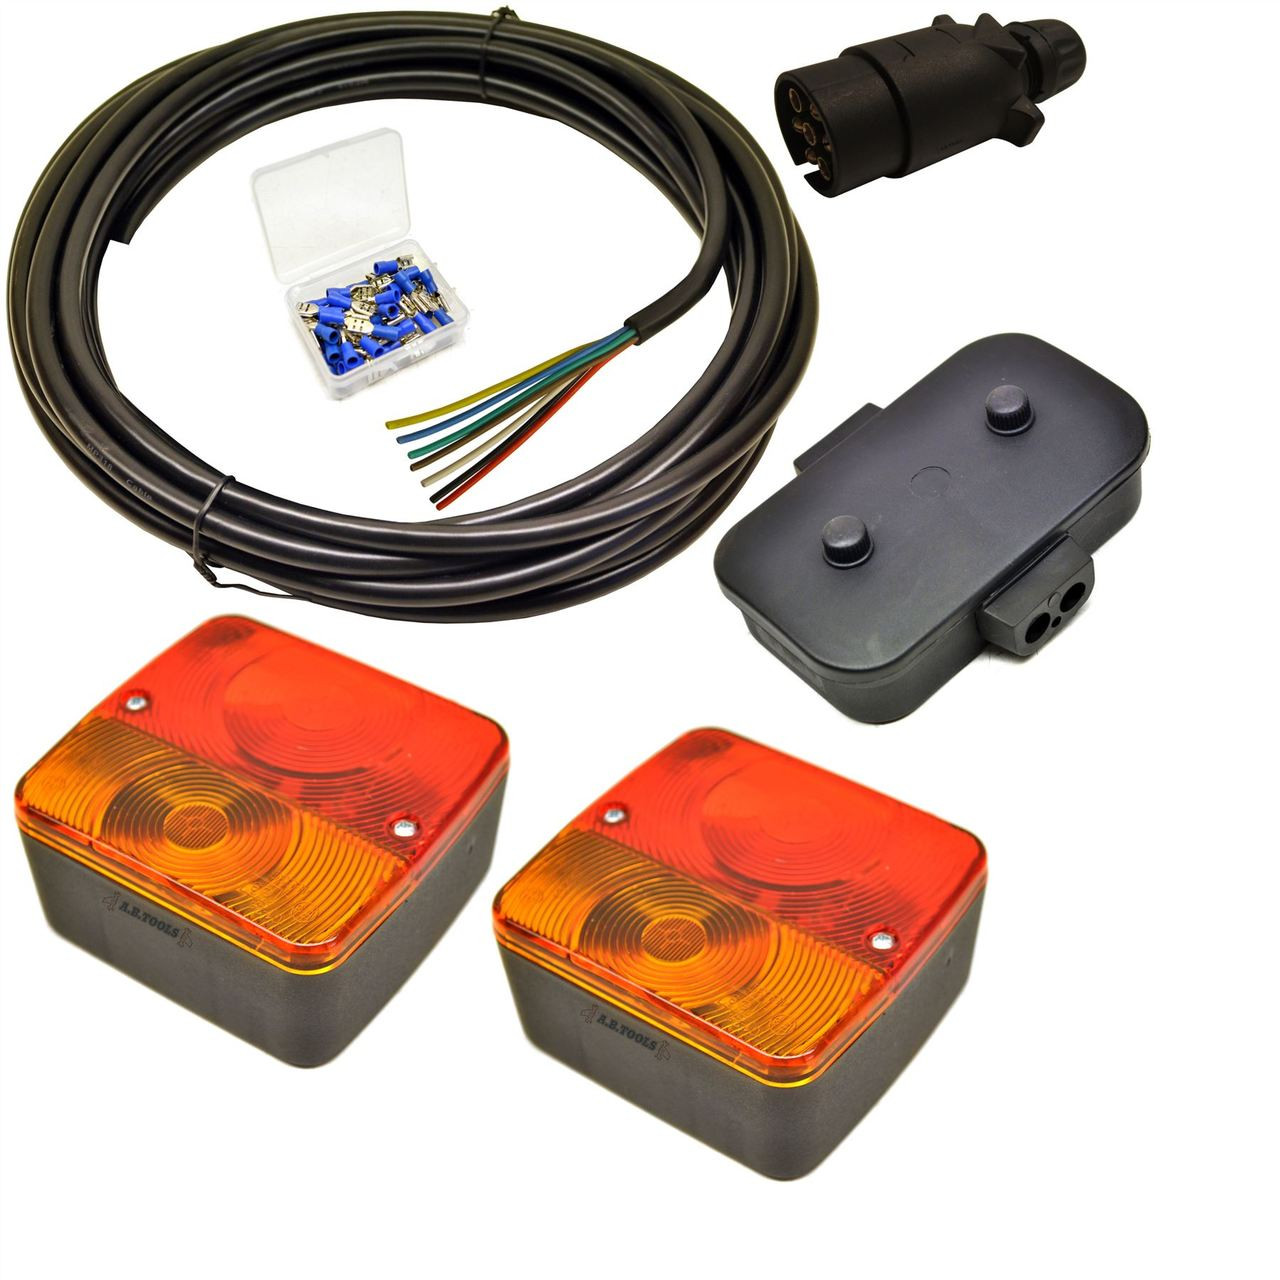 Awesome Trailer Light Wiring Kit Small Lights Plug Junction Box 5M Wire Wiring Digital Resources Cettecompassionincorg